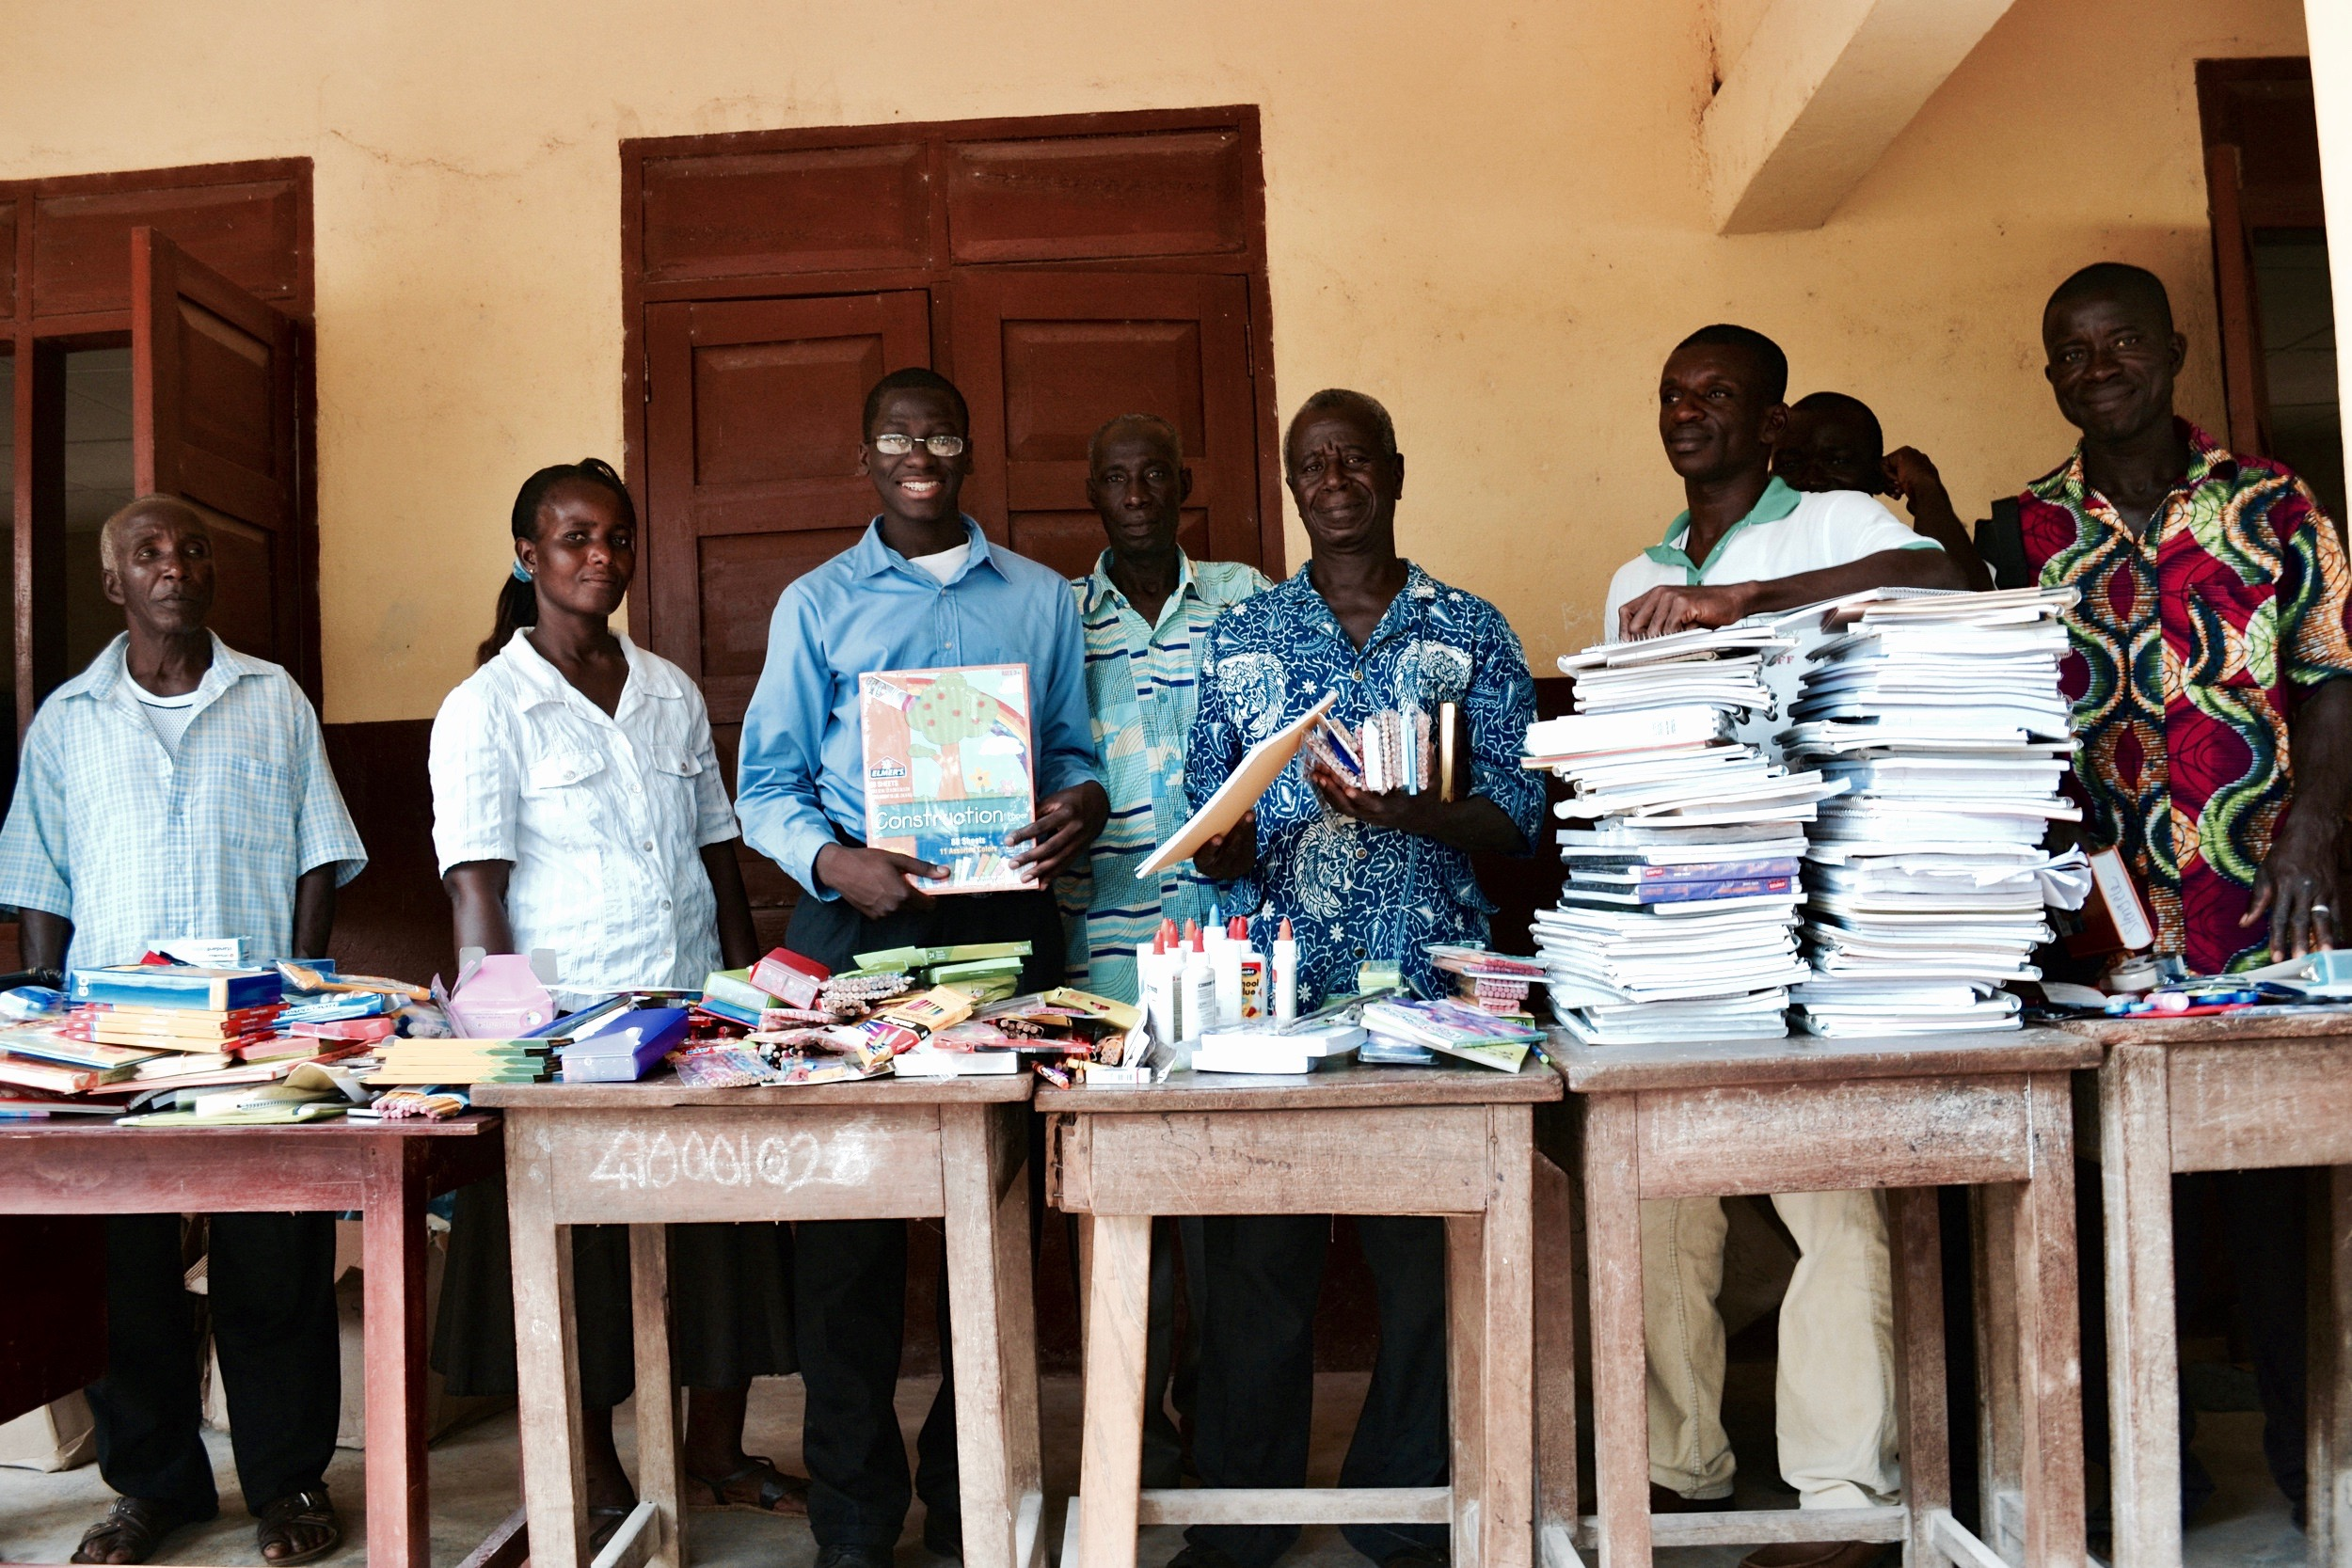 Joel Bervell sharing school supplies donated to Tikobo II Elementary School through 'Project Educate' during a trip to Ghana in 2011